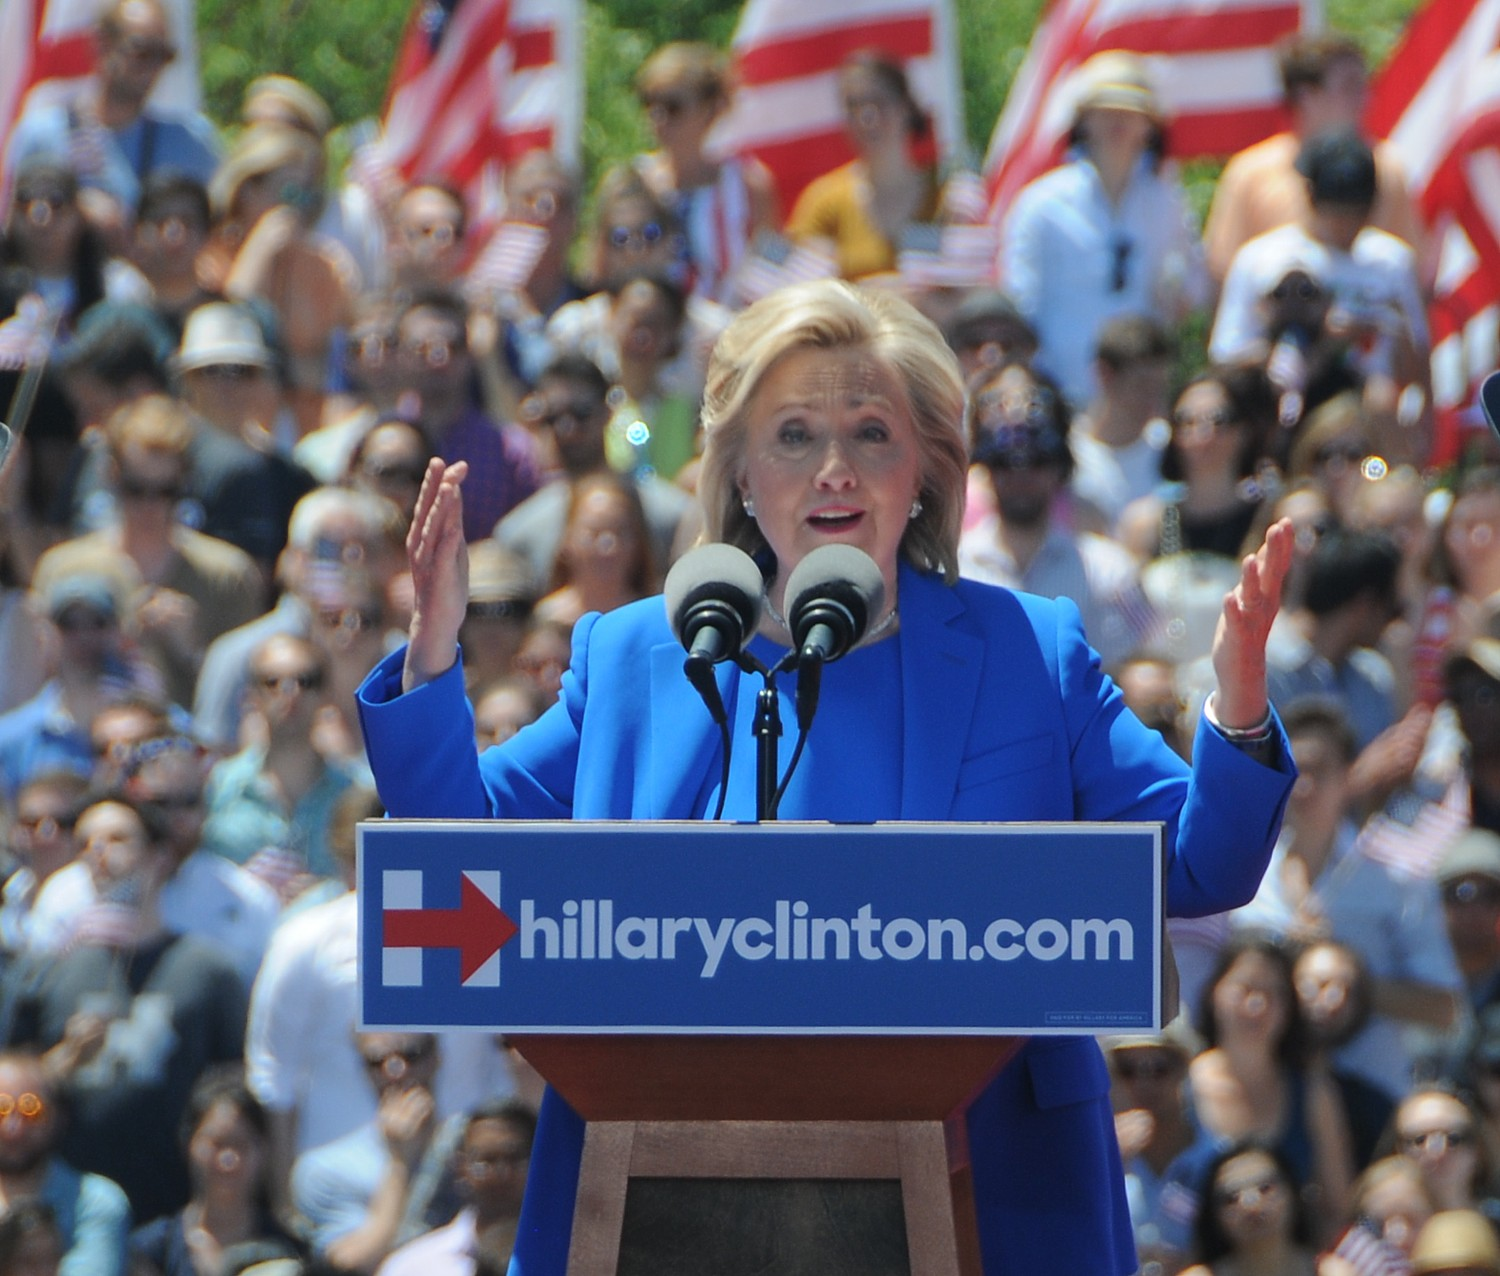 """Hillary Clinton campaigning for president. Clinton has offered a detailed strategy for defeating terrorism while attacking Republican opponents saying,""""Slogans aren't a strategy. Loose cannons tend to misfire. What America needs is strong, smart, steady leadership to wage and win this struggle.""""  © 2016 Karen Rubin/news-photos-features.com"""